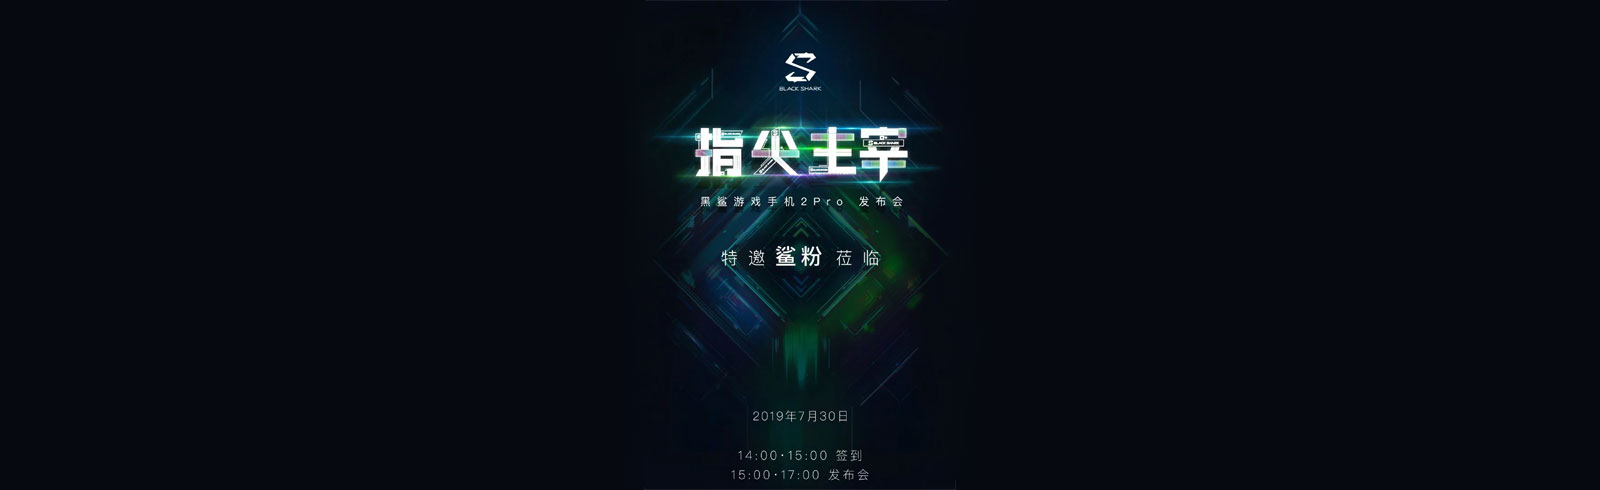 Black Shark 2 Pro will be unveiled on July 30th, could sport a Snapdragon 855 Plus mobile platform